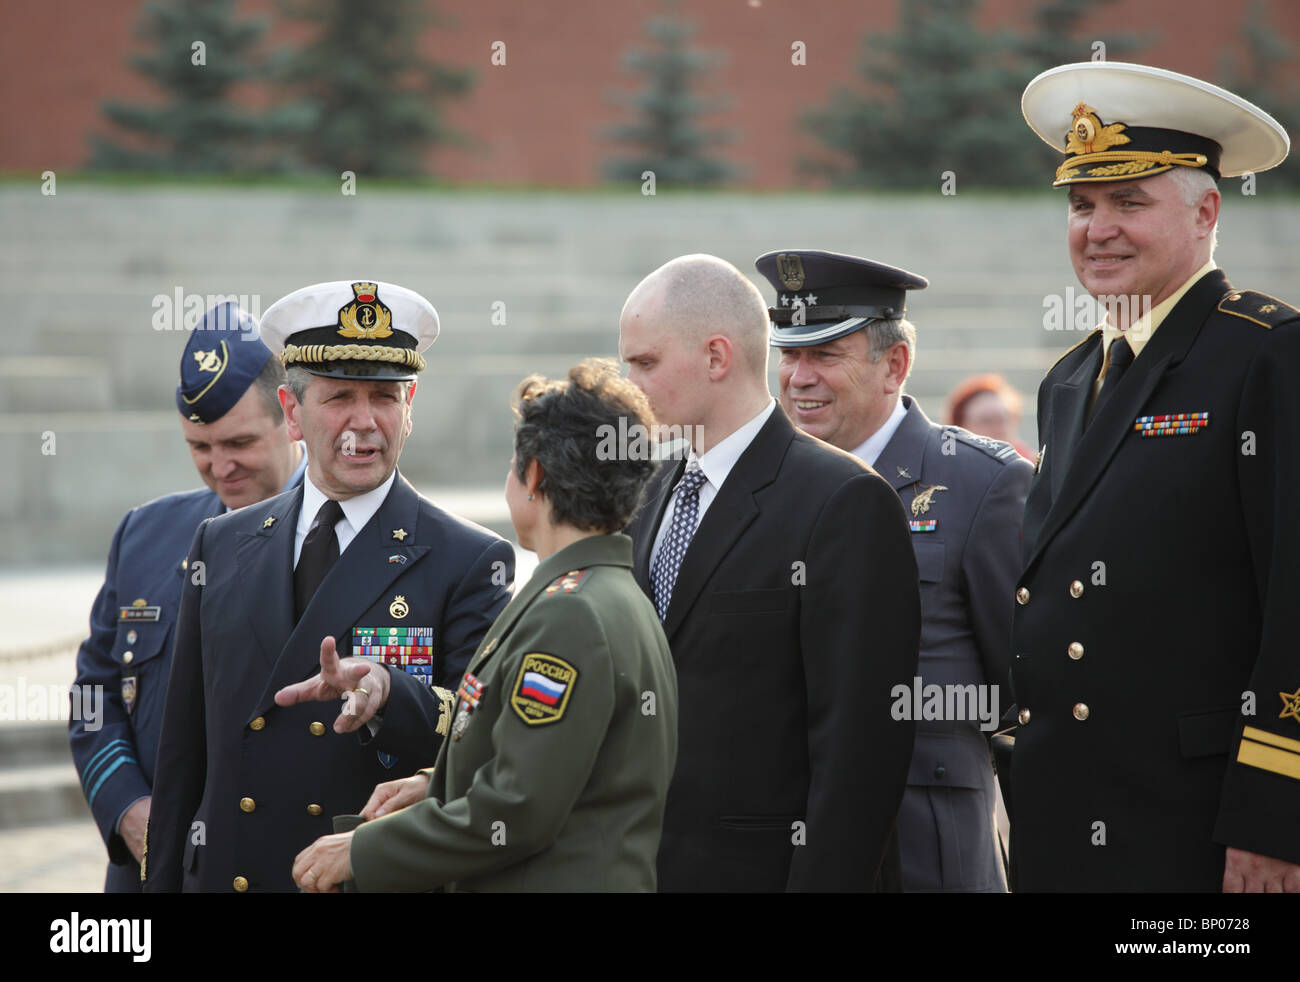 NATO delegation on Red Square, Moscow, Russia - Stock Image